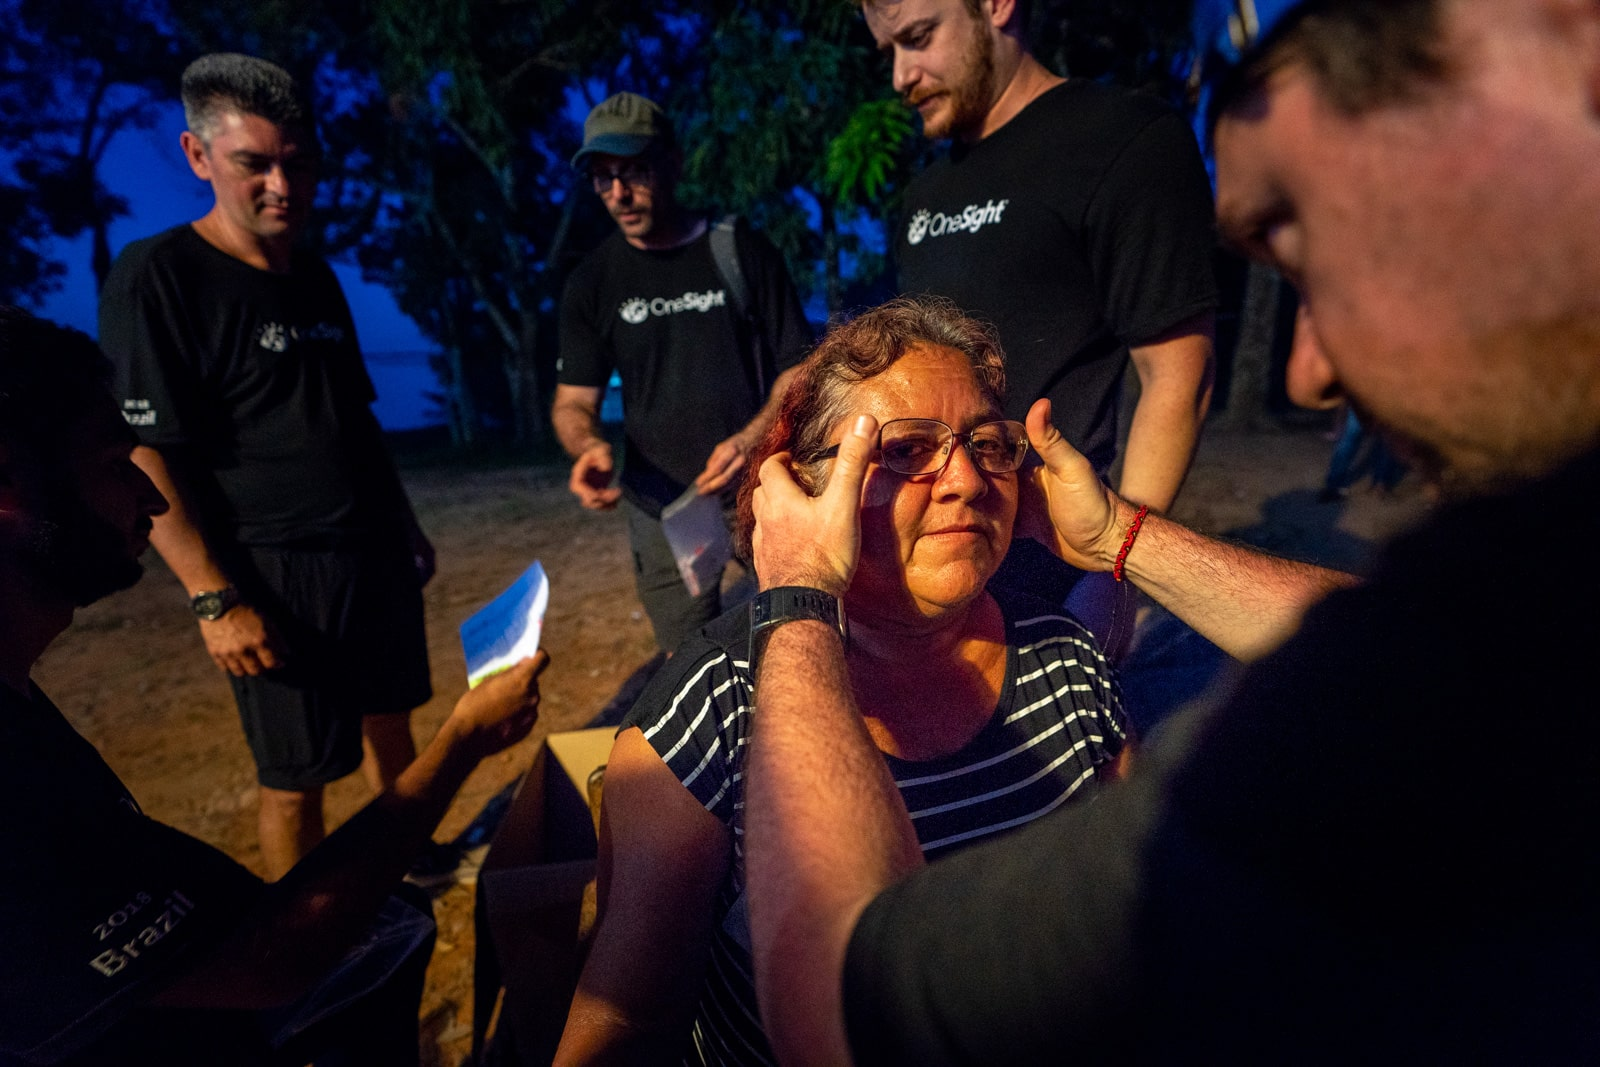 OneSight's mobile eye care clinic in the Brazilian Amazon - Marilucia receives her glasses - Lost With Purpose travel blog